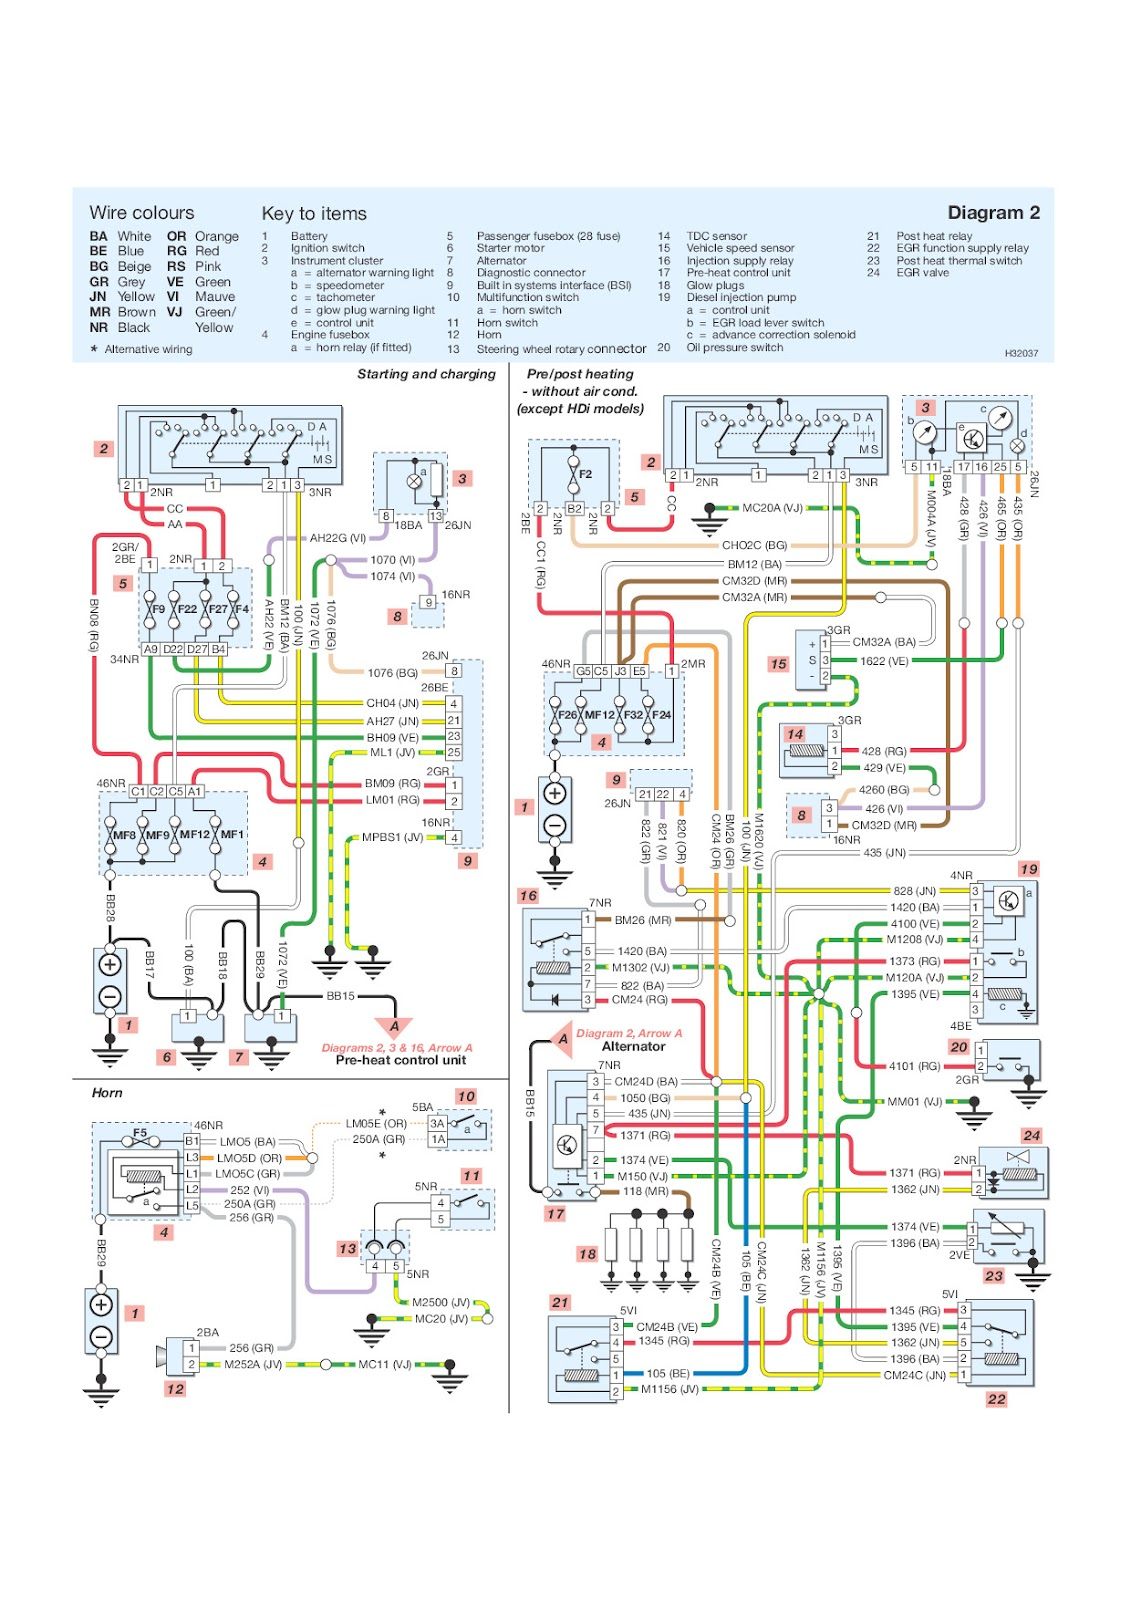 peugeot 206 fuse box horn wiring diagram blog mix peugeot 206 fuse box horn wiring diagram [ 1131 x 1600 Pixel ]